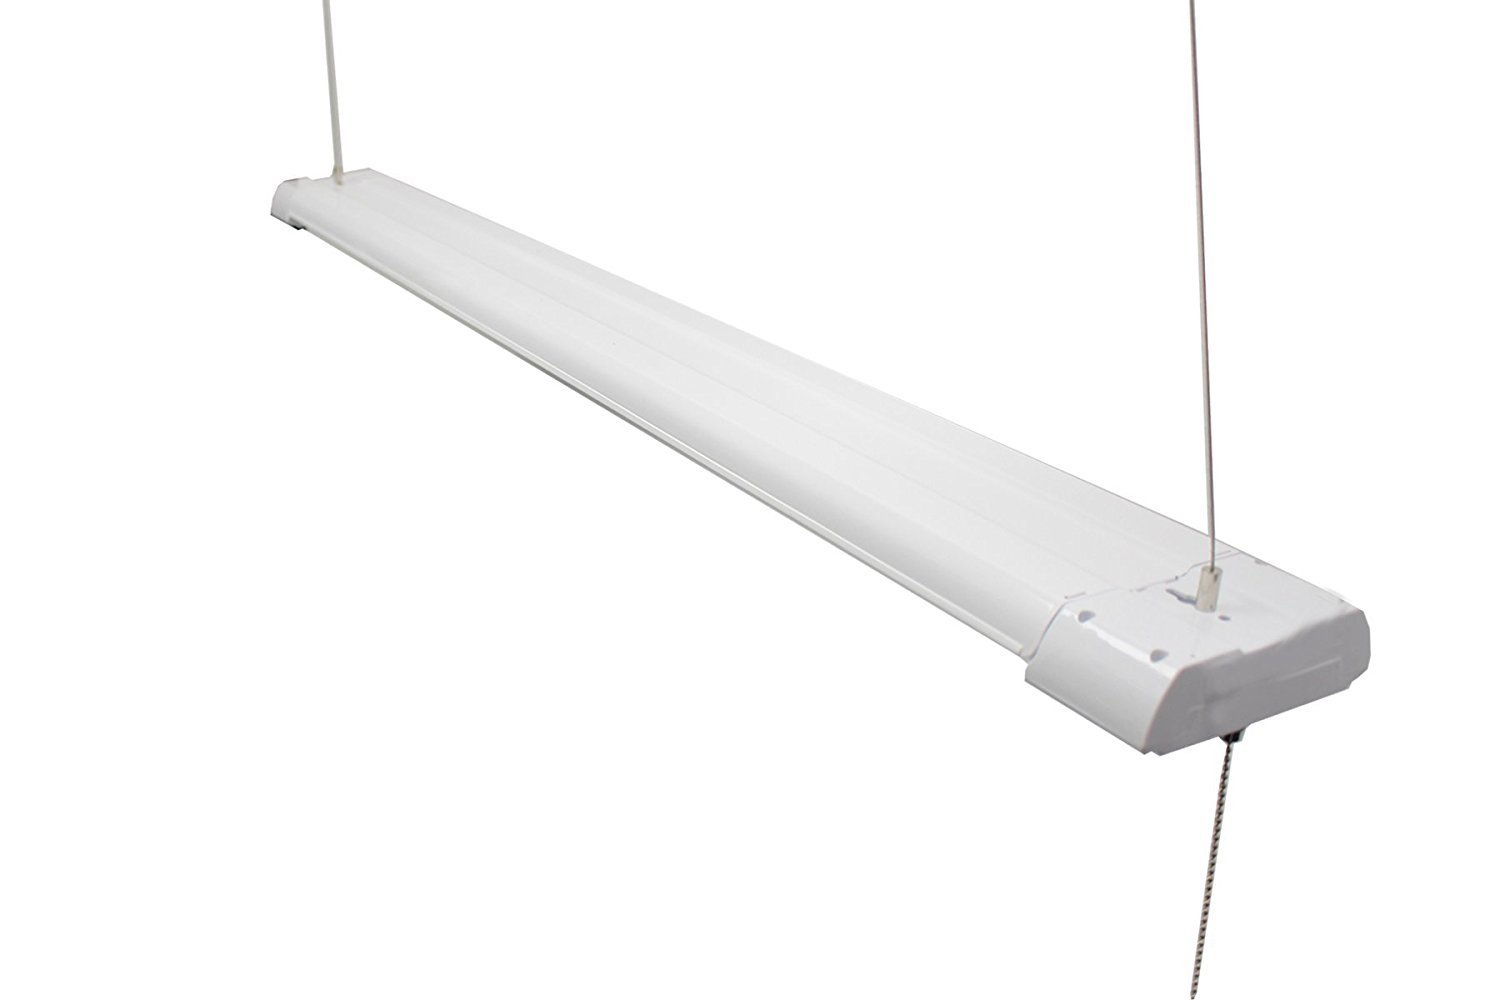 Details about westgate led strip light 4ft 40w high bay hanging garage warehouse lamp fixture